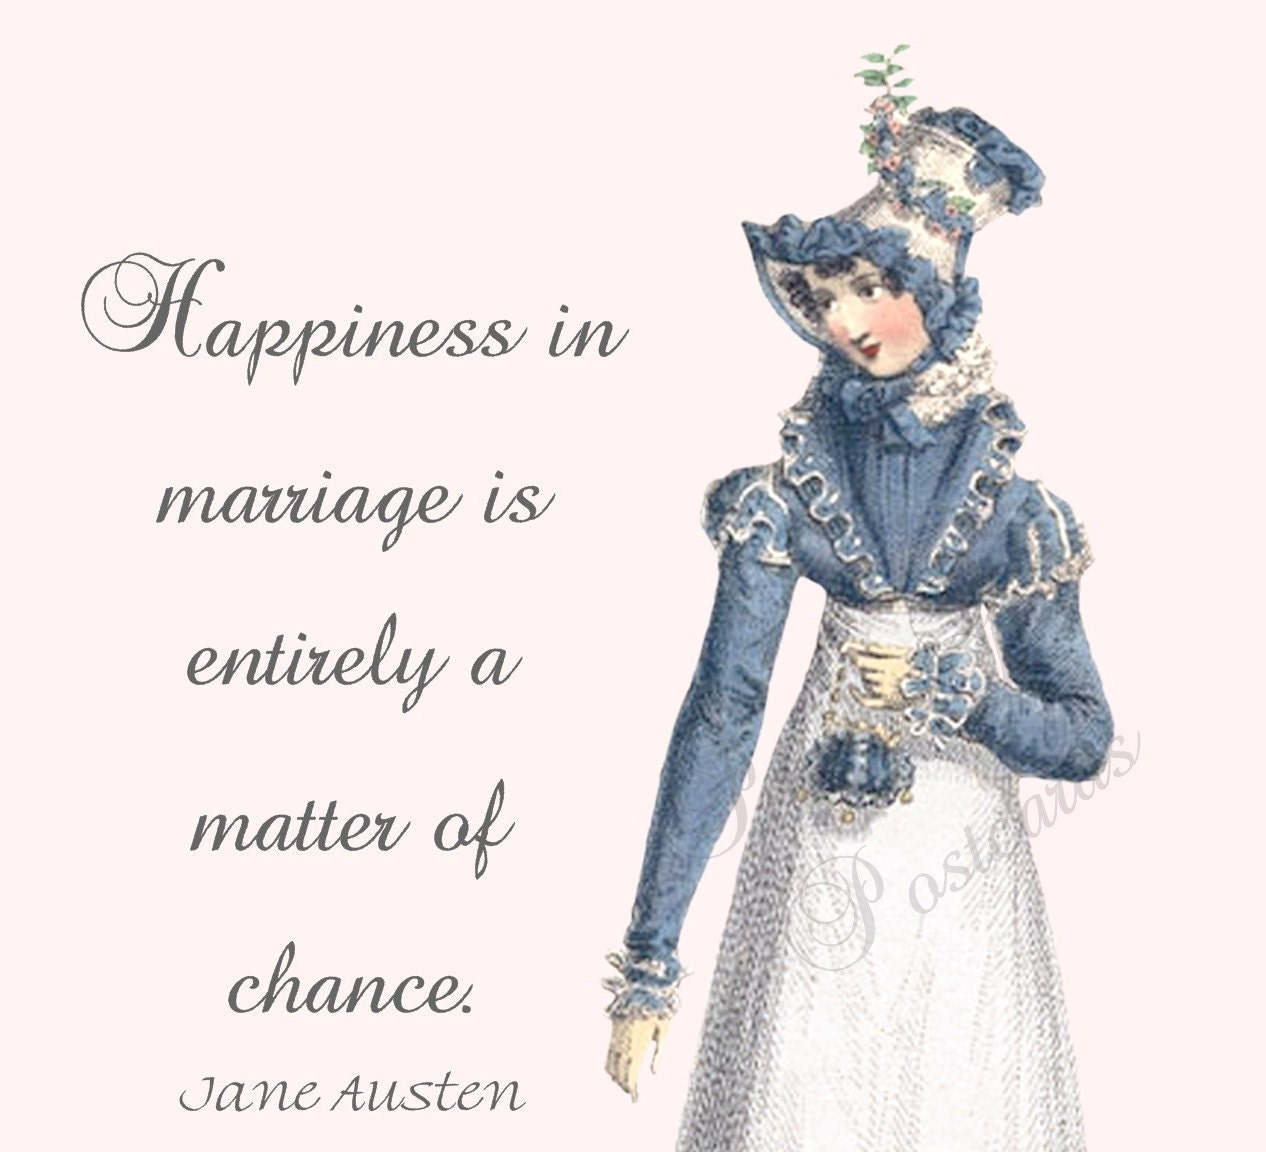 Quotes About Love And Marriage In Pride And Prejudice : Jane Austen Wedding Quotes. QuotesGram